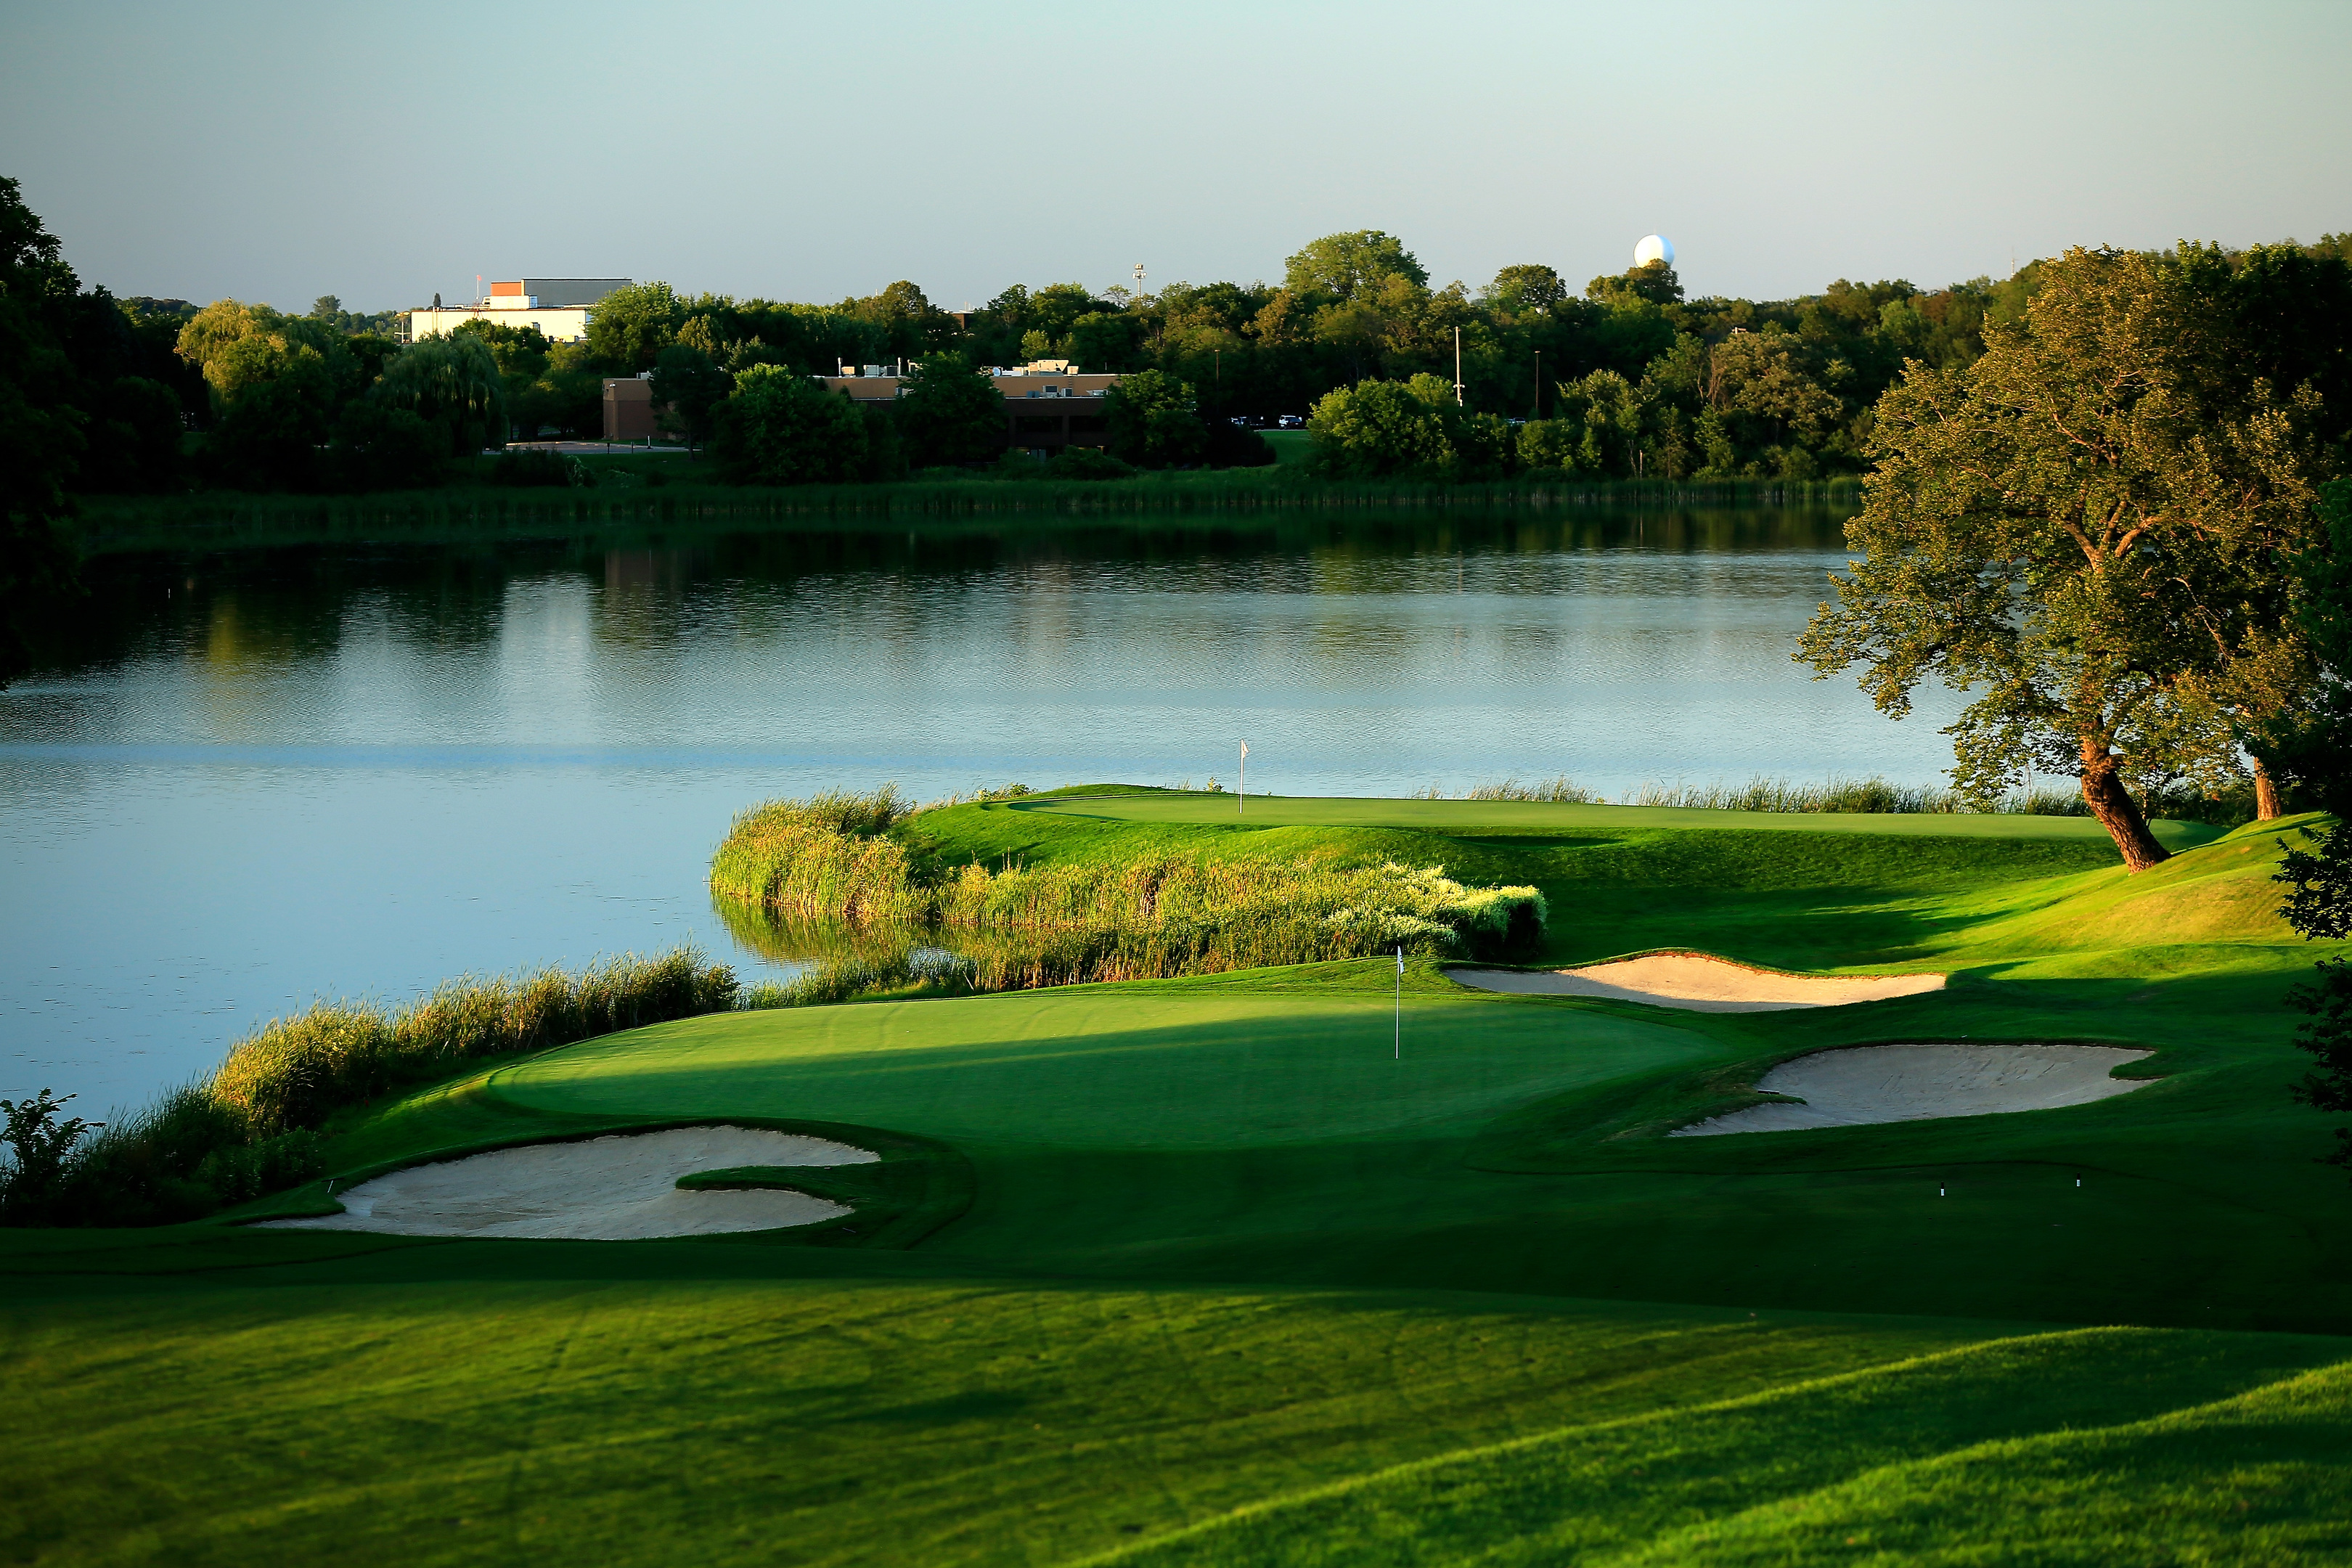 The 10th at Hazeltine, scene of this week's Ryder Cup.